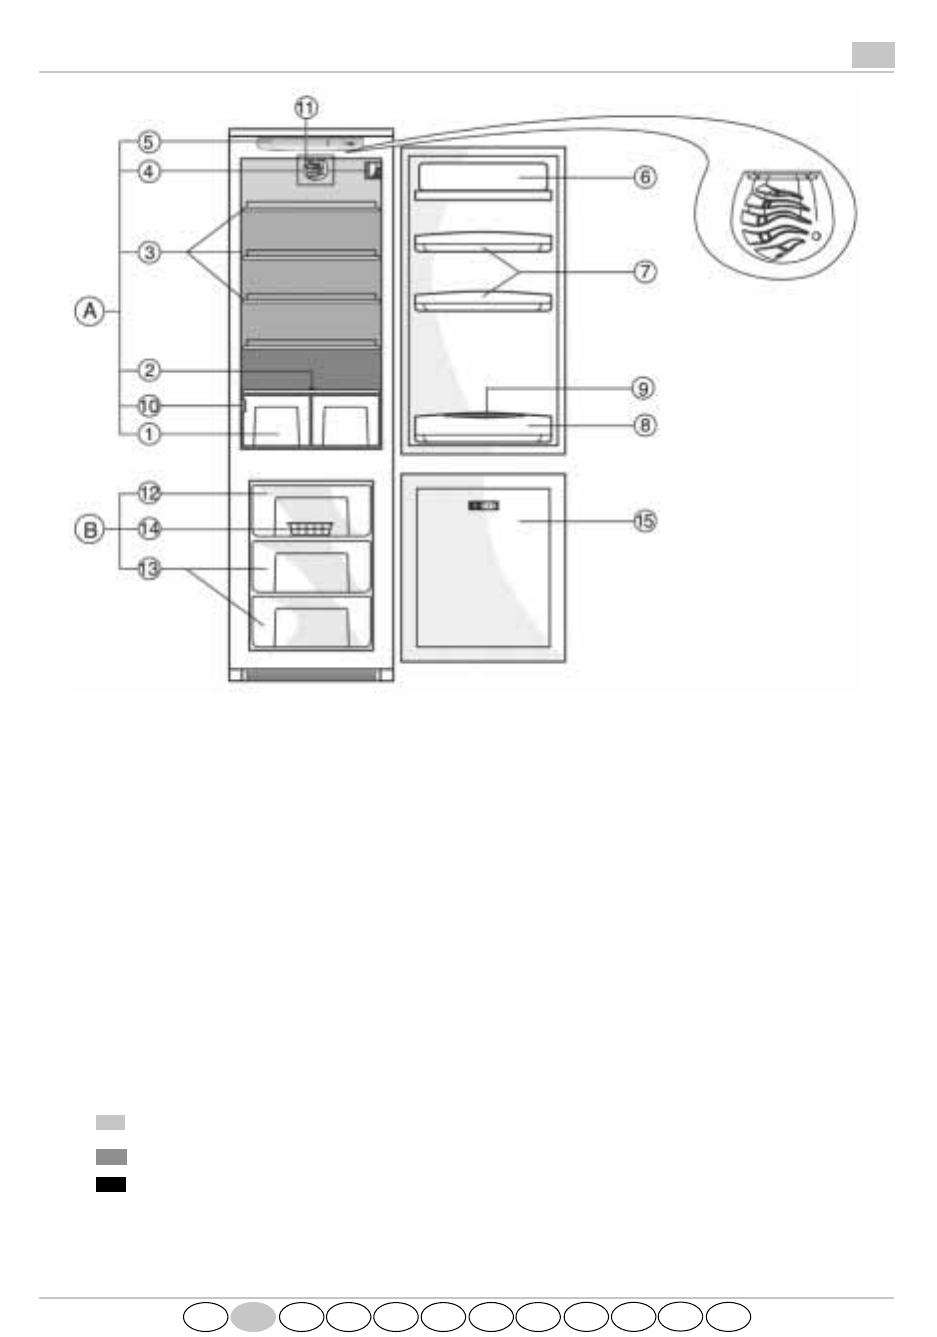 7ijf1 Mercury Montego 2005 Mercury Montego Will Not Turn Over Battery in addition Switch Wiring Using Nm Cable furthermore House Wiring Diagrams For Lights likewise Hunter Ceiling Fan Light Wiring Diagram additionally Red Dot Trinary Switch Wiring Diagram. on light and fan wiring diagram